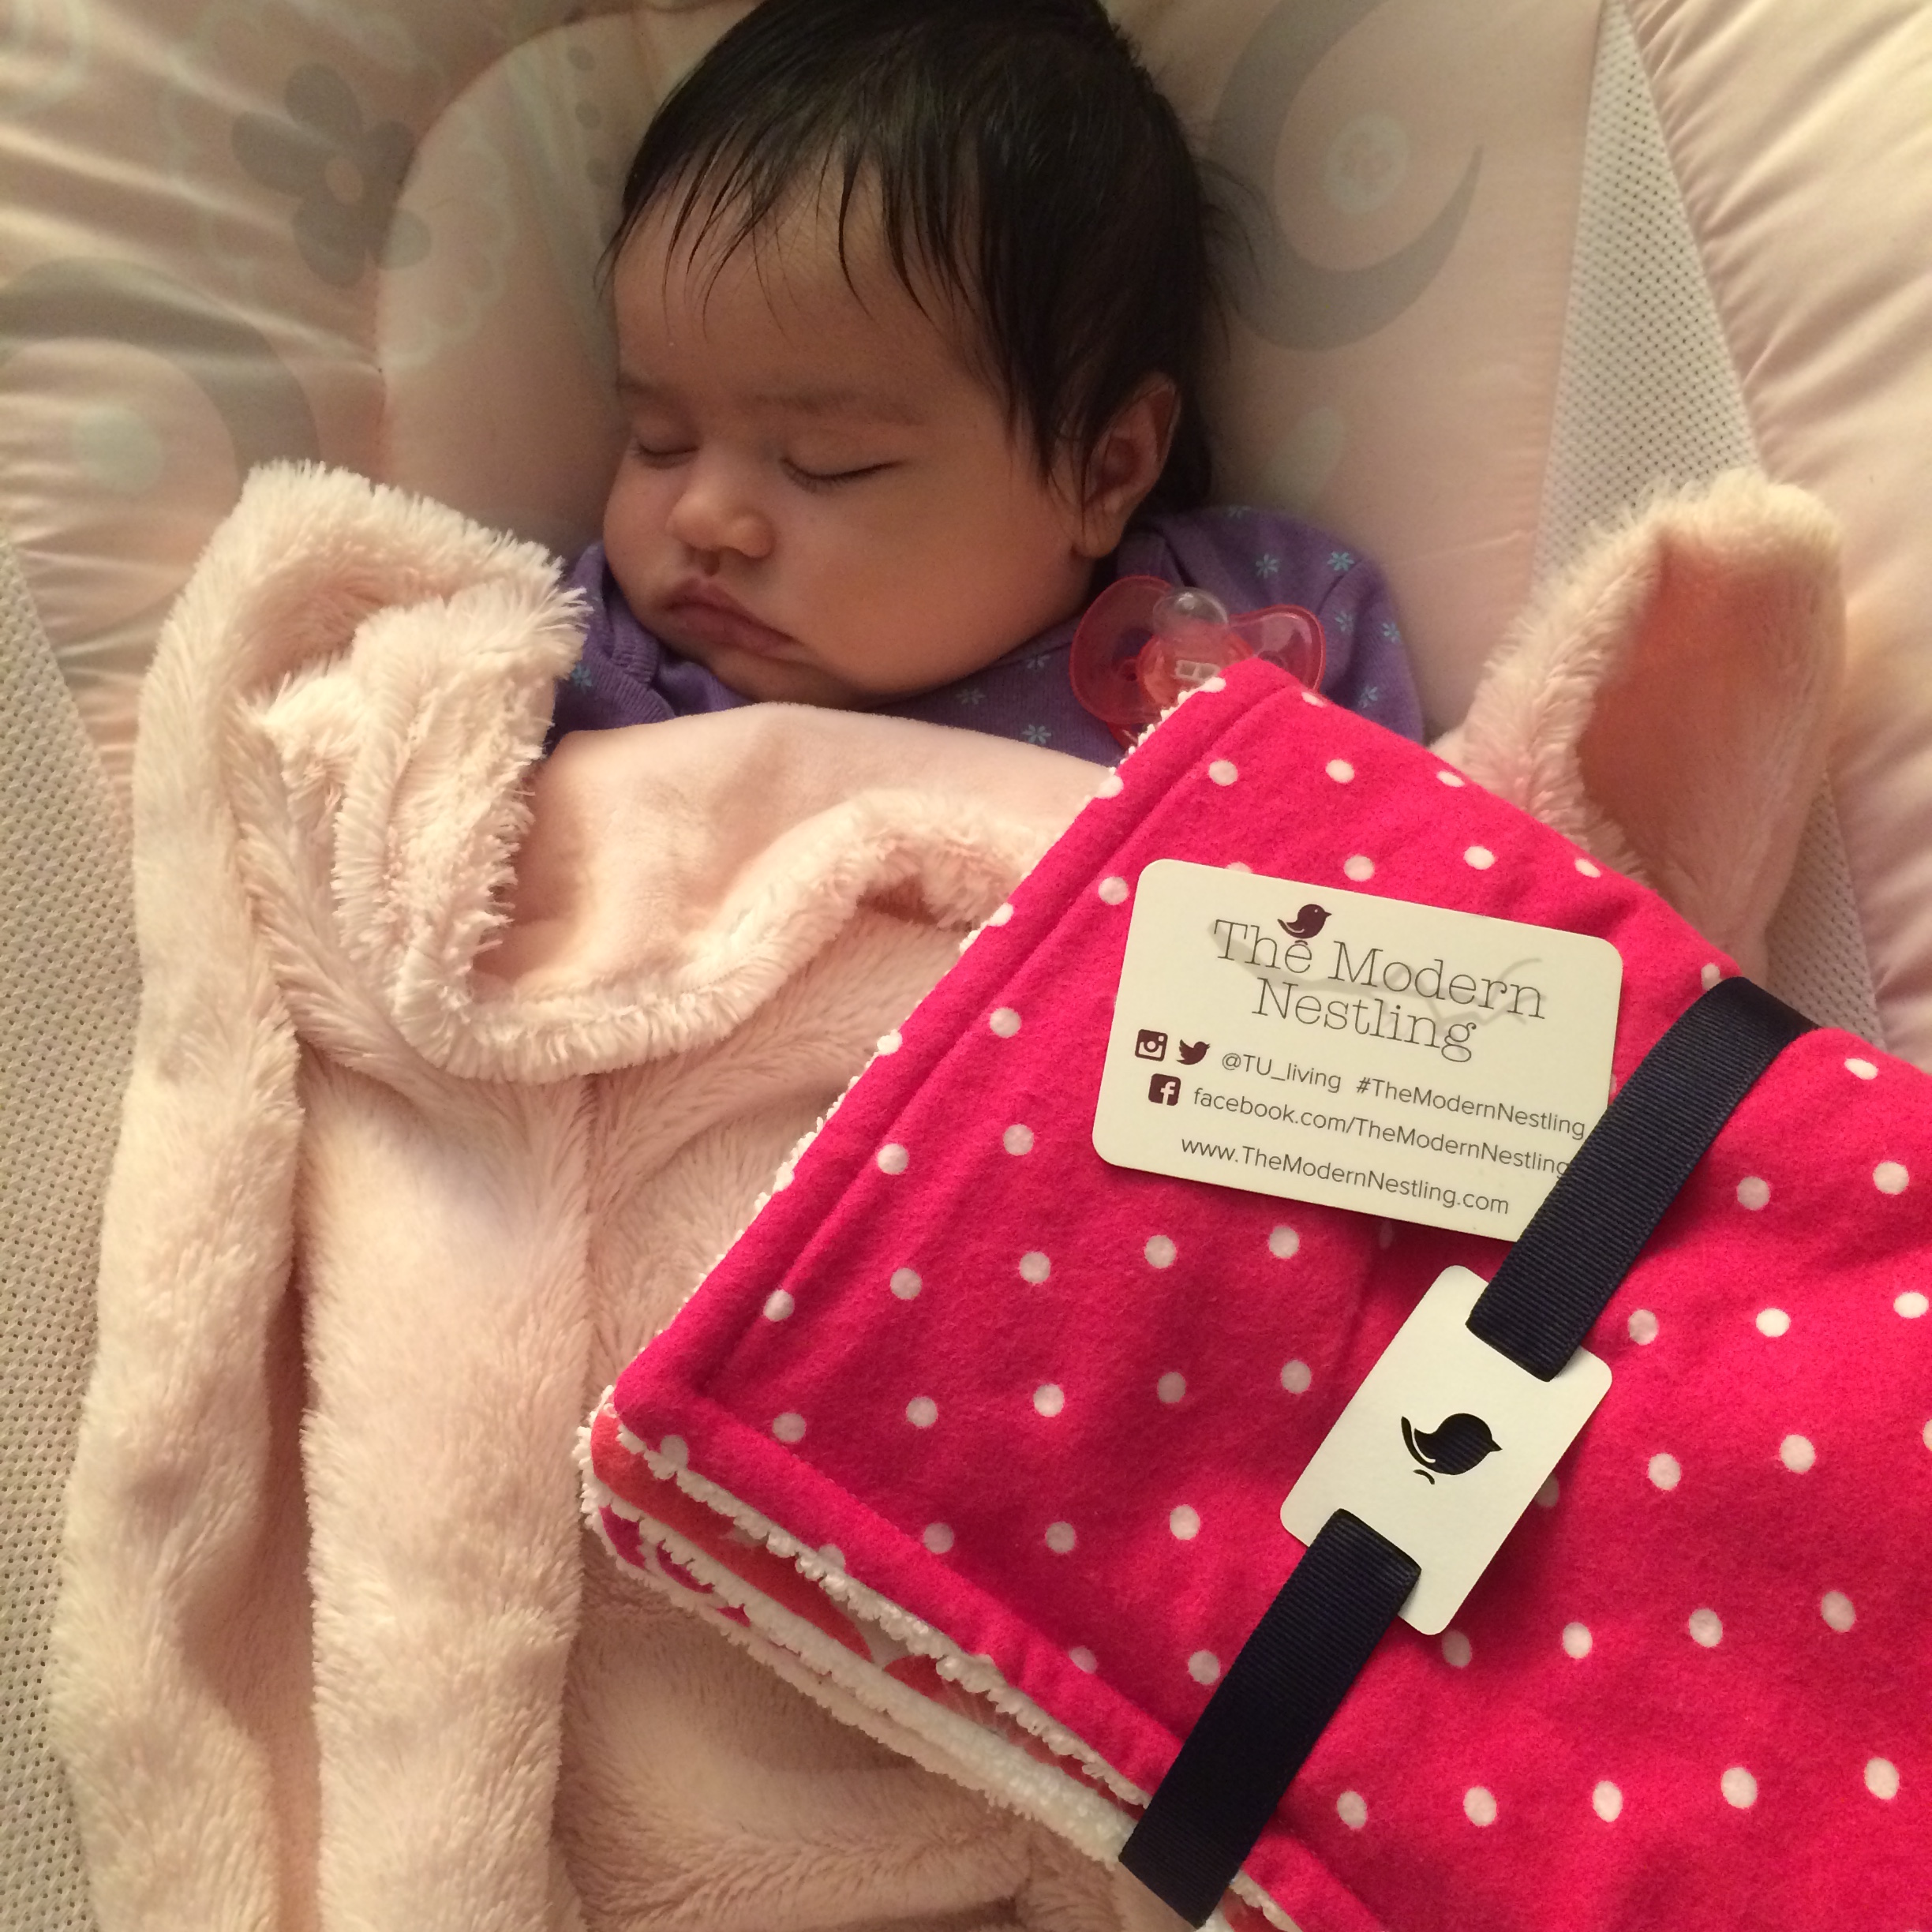 This sleepy little nestling woke up to a set of  Pretty in Pink  TMN burp cloths, Lucky her!! # TheModern    Nestling